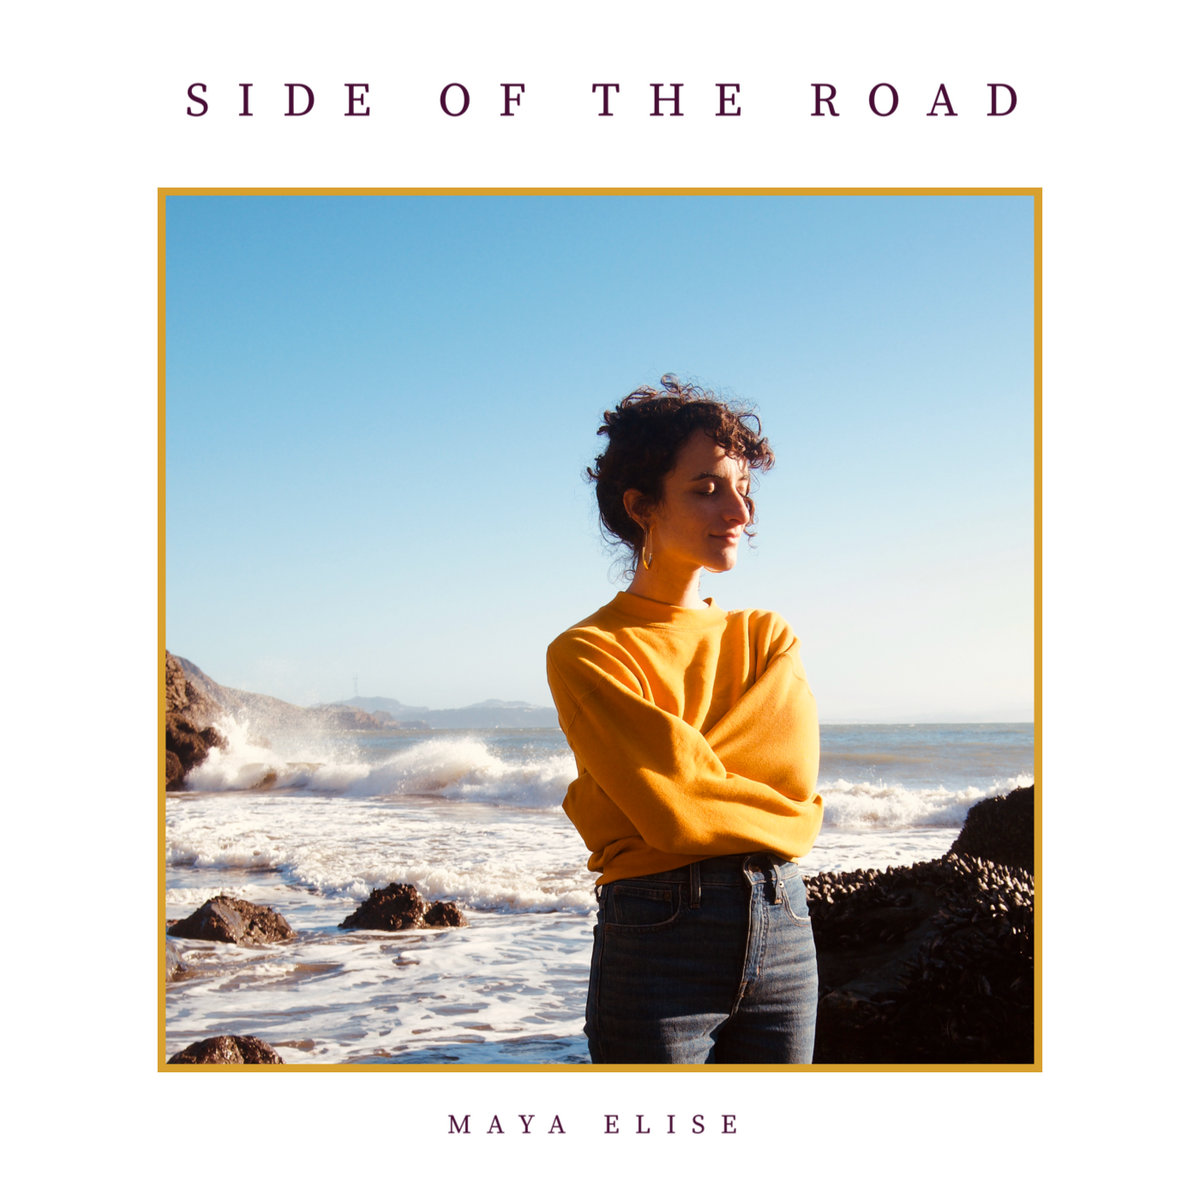 Side of the Road by Maya Elise